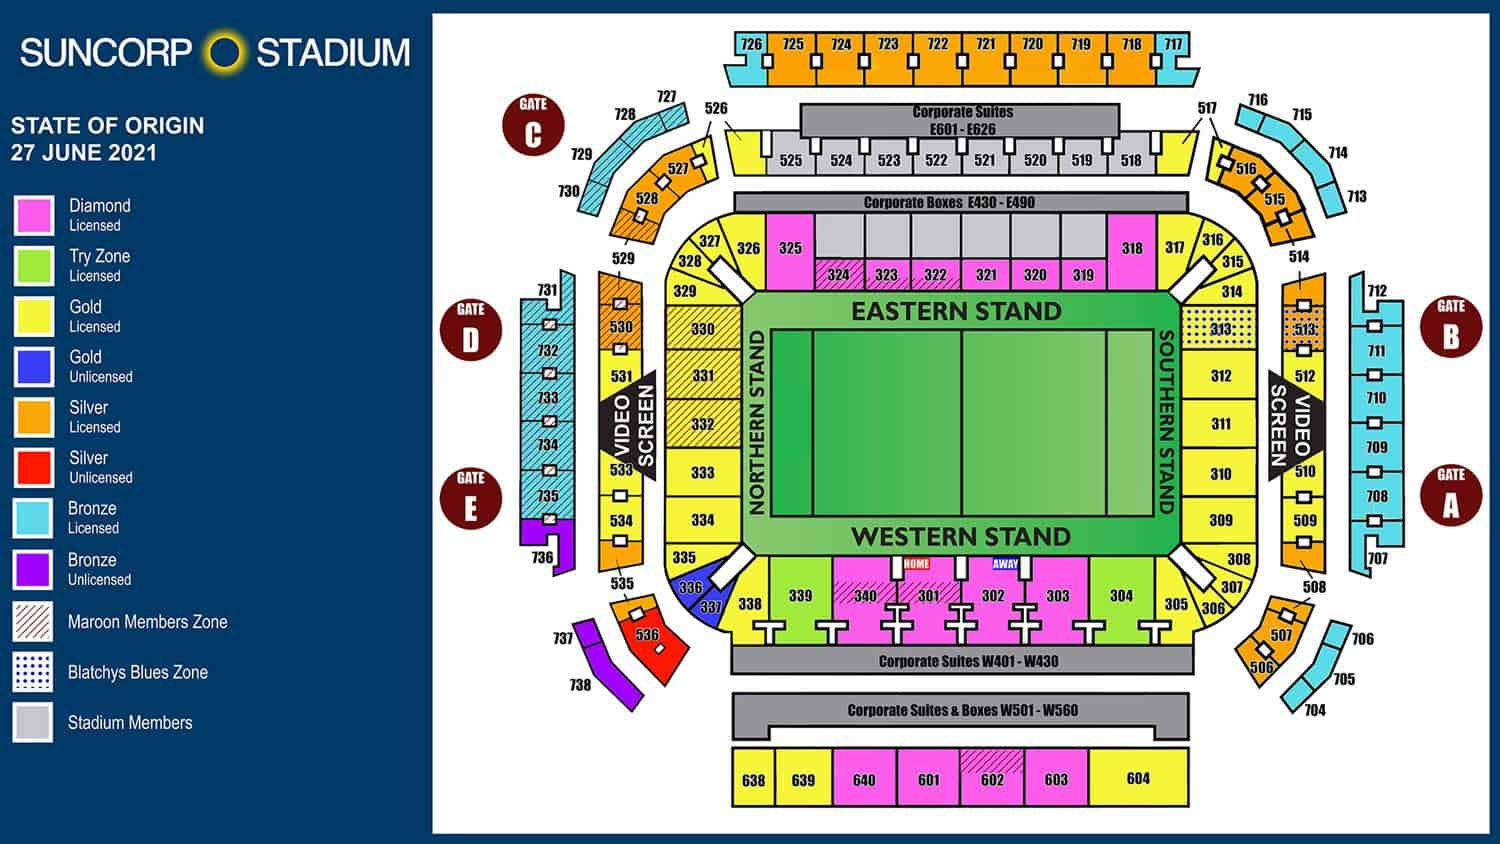 Ampol State of Origin Game II Brisbane Sunscorp Stadium Venue Map